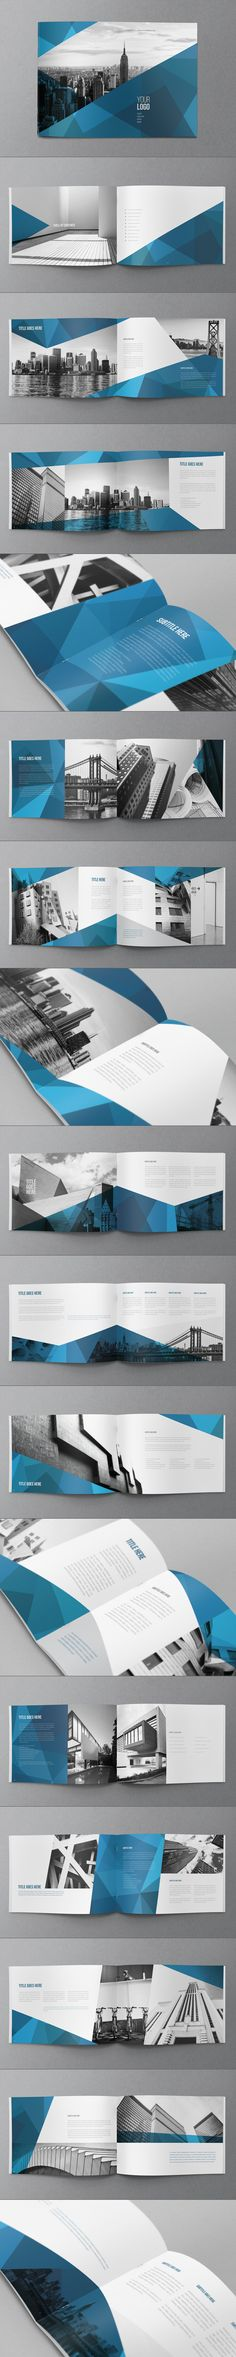 Abstract Architecture Brochure by Abra Design, via Behance // identity, branding, graphic Graphisches Design, Buch Design, Layout Design, Print Design, Design Elements, Modern Design, Brochure Indesign, Brochure Layout, Design Brochure